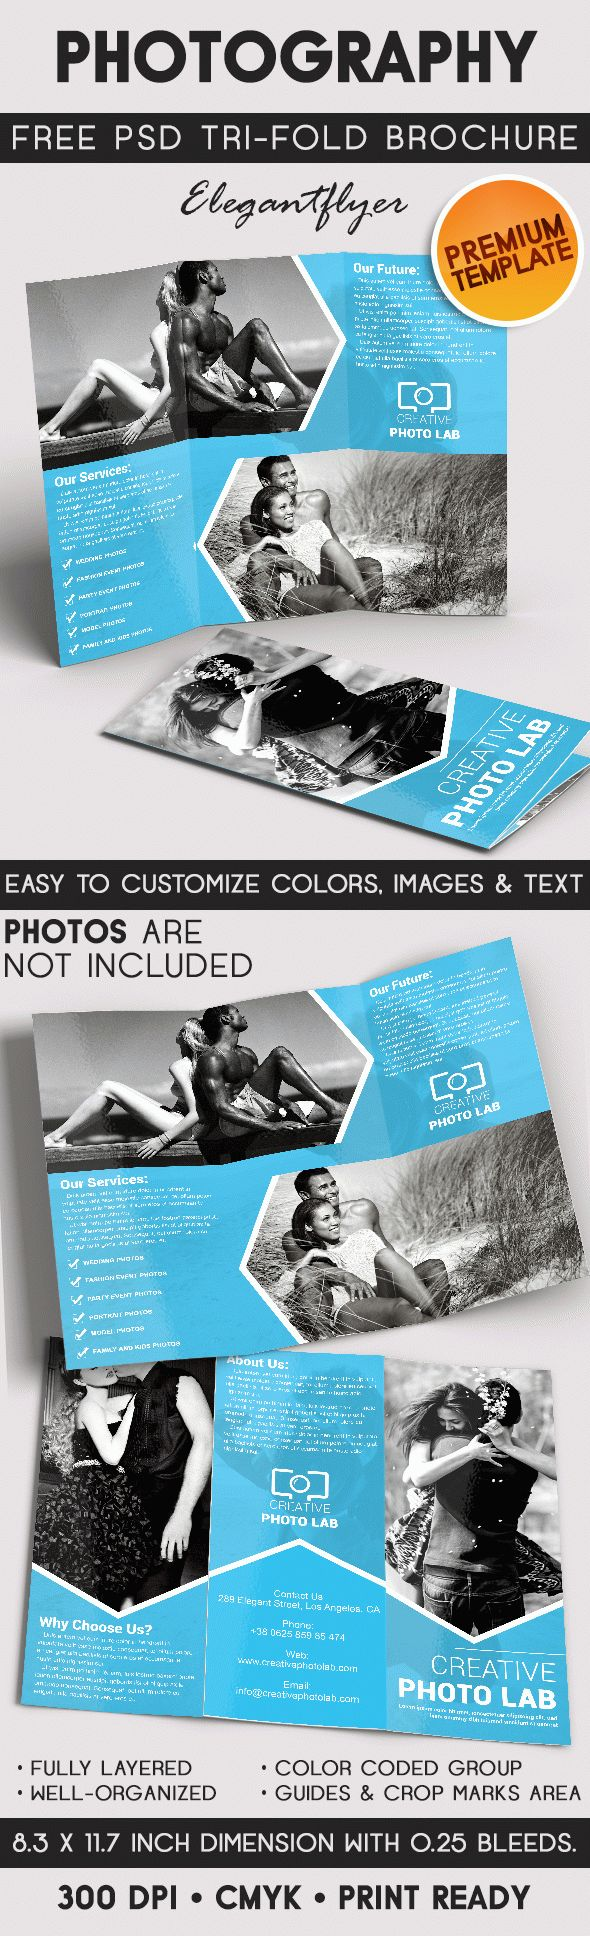 Photography – Tri-Fold Brochure PSD Template